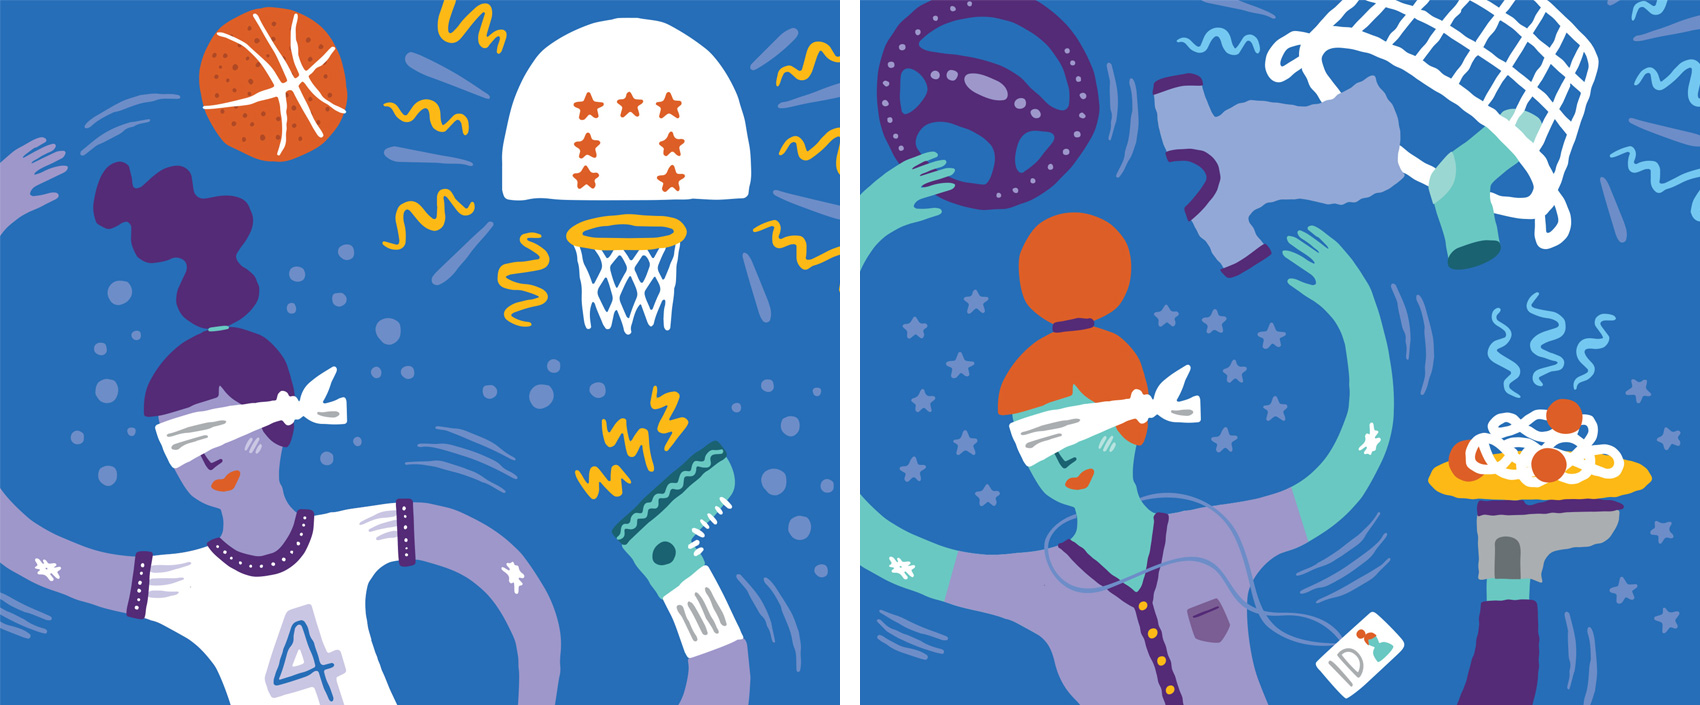 Illustration of a teenage girl tossing a basketball into a hoop. // Illustration of a mom tossing clothes into a laundry basket